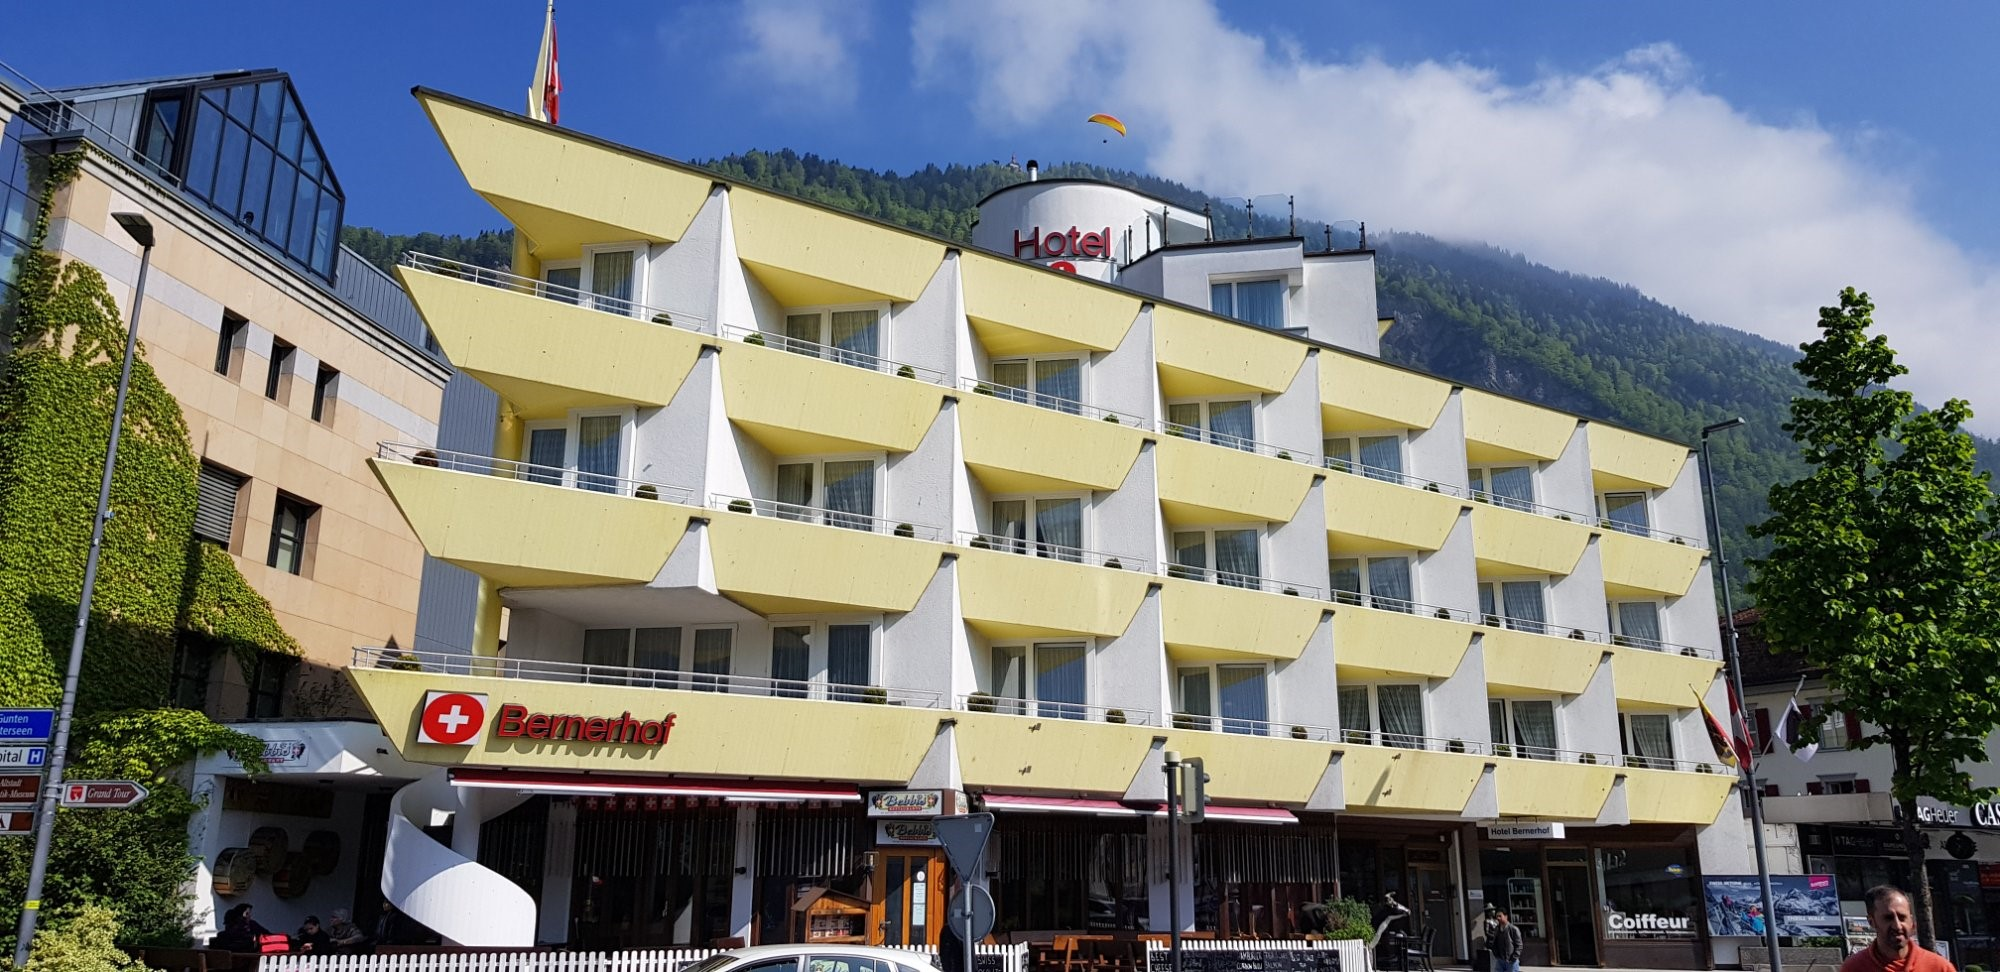 Hotel Bernerhof, Switzerland image